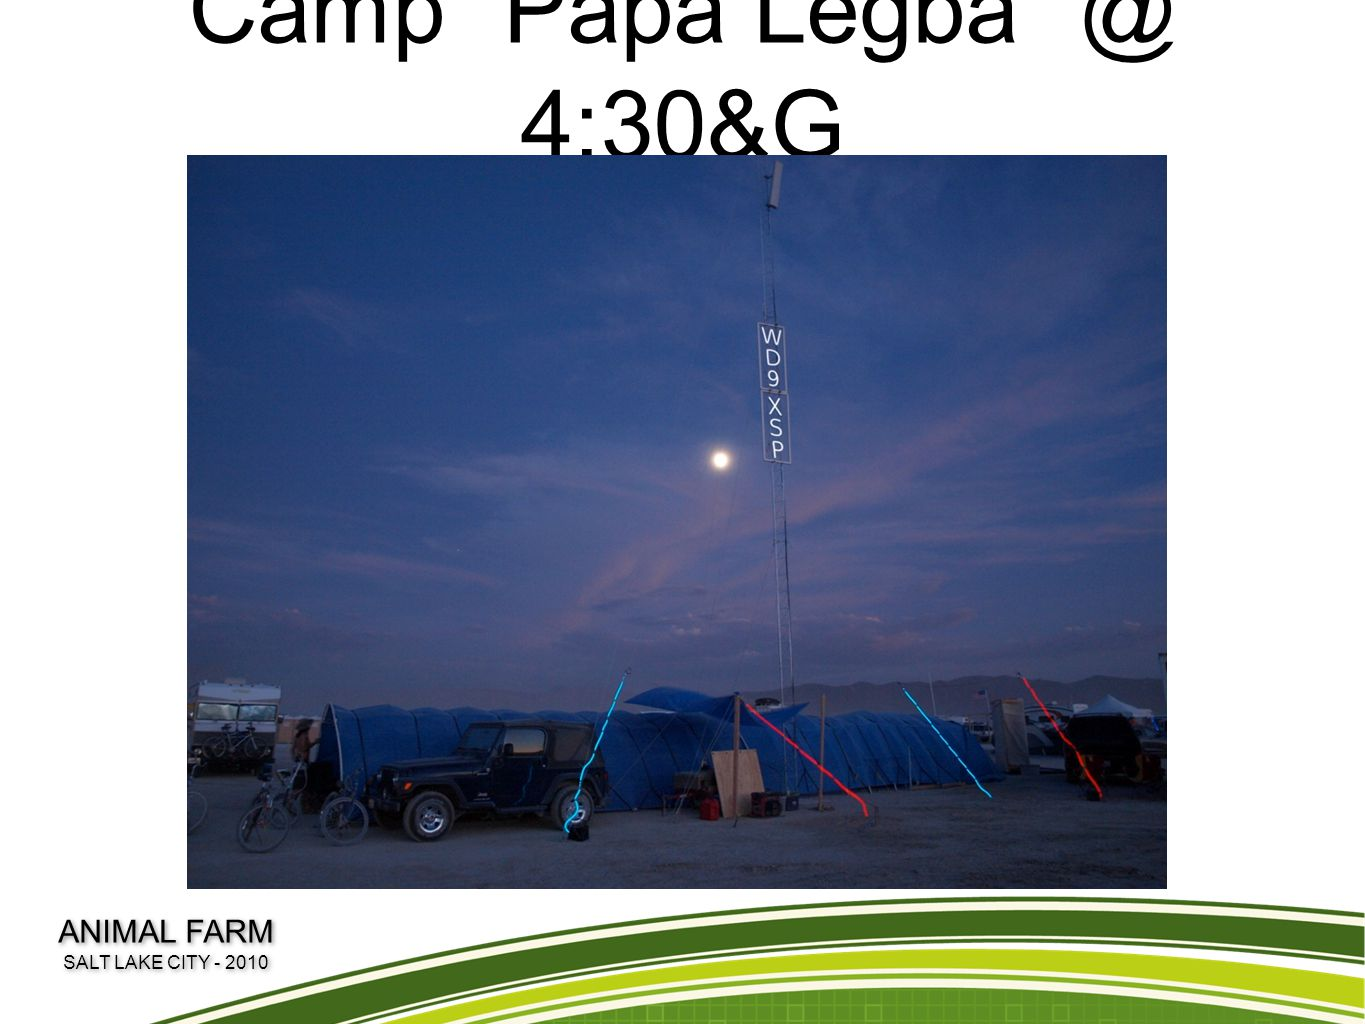 "Camp ""Papa Legba"" @ 4:30&G ANIMAL FARM SALT LAKE CITY - 2010 ANIMAL FARM SALT LAKE CITY - 2010"